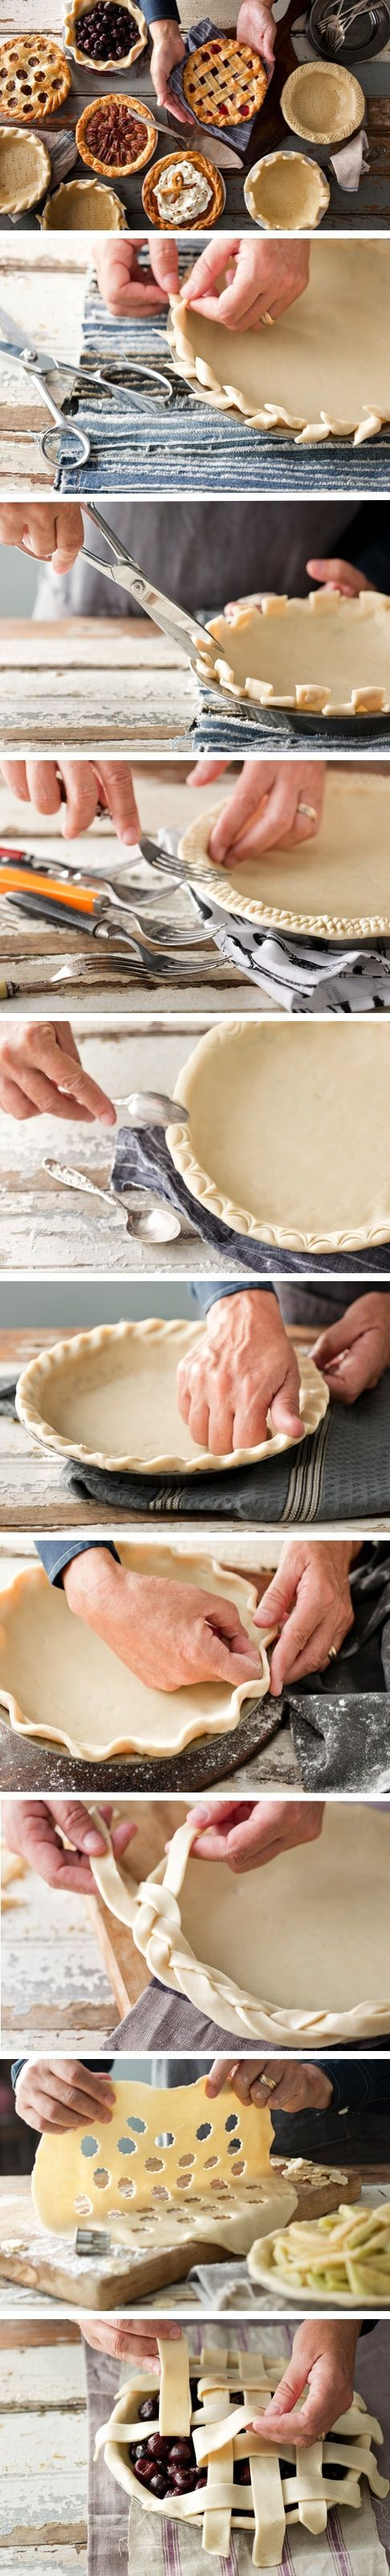 rings silver 925 Creative Pie Crust Designs for the Holidays